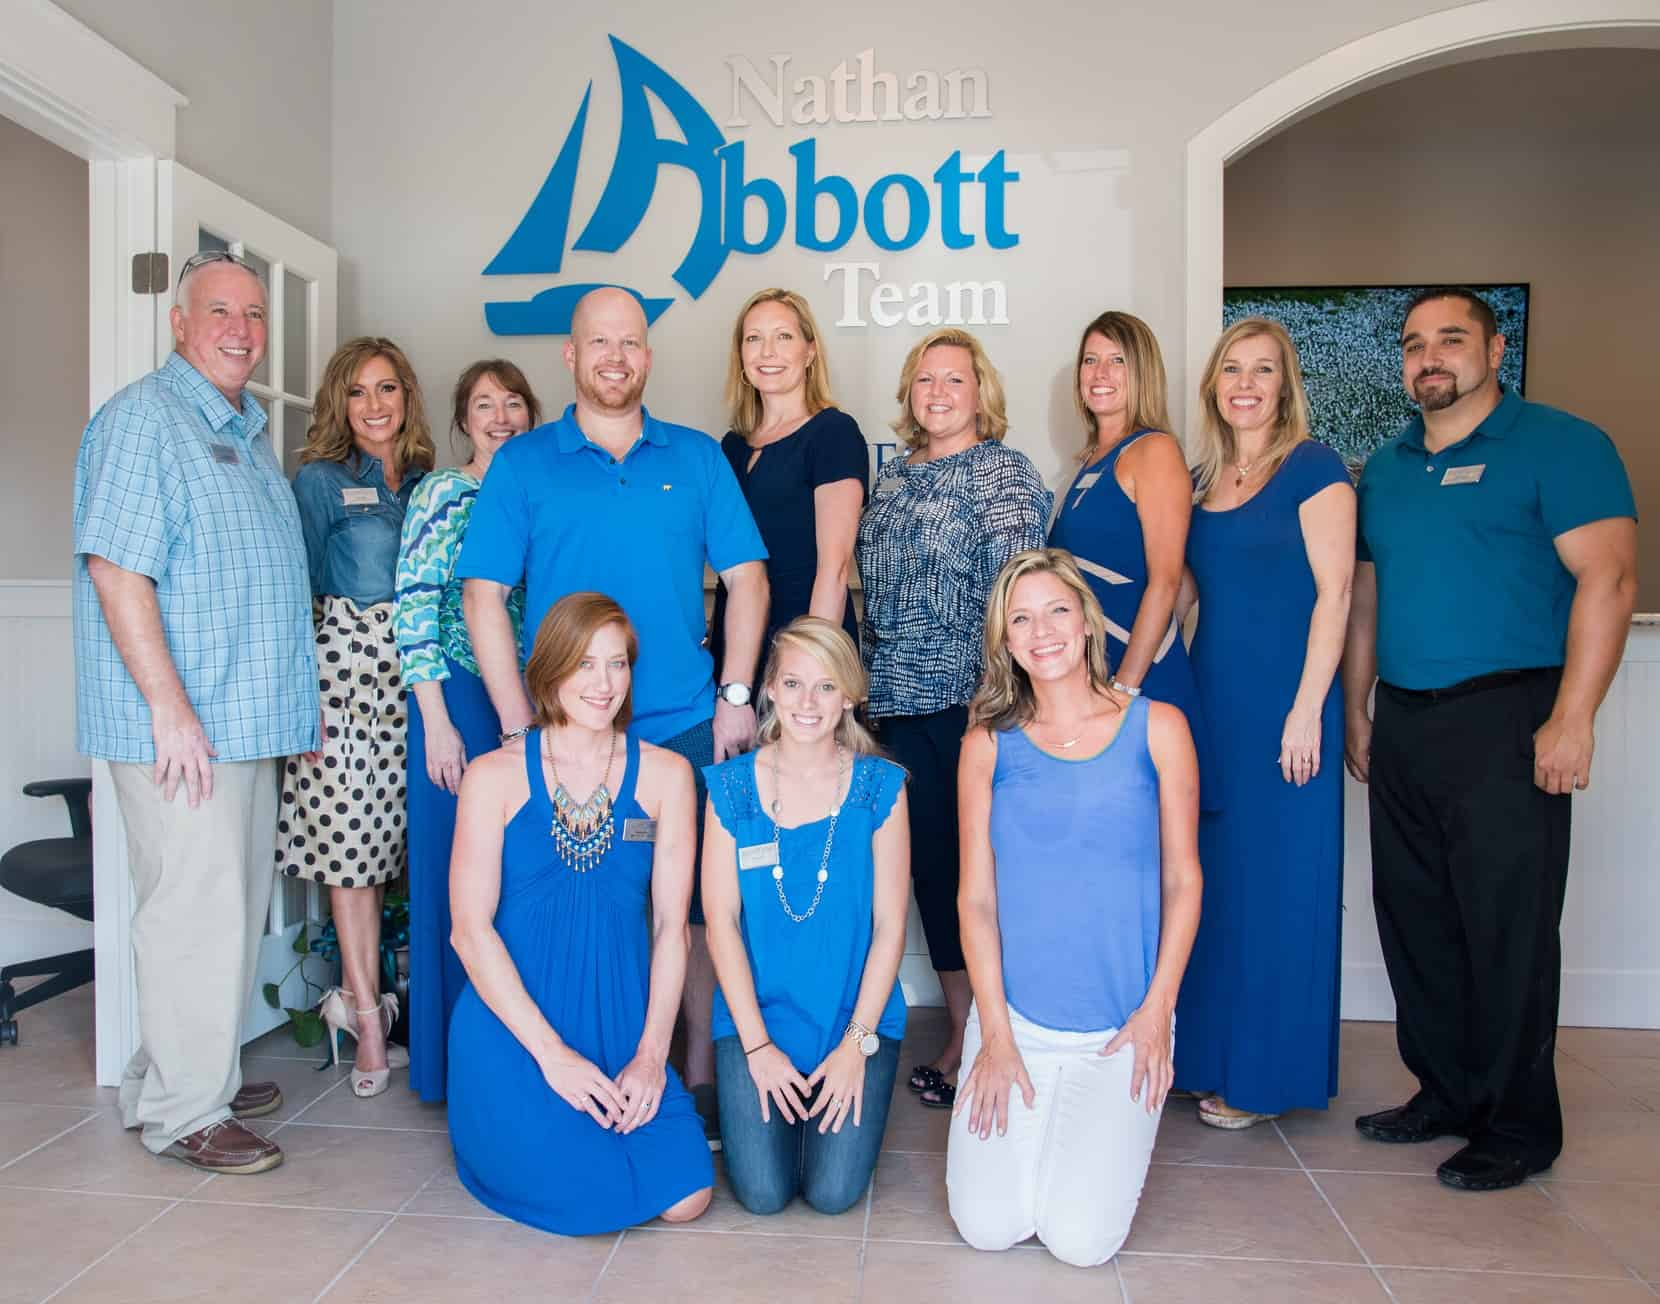 small_Nathan Abbott Team 6-17-2015 _11